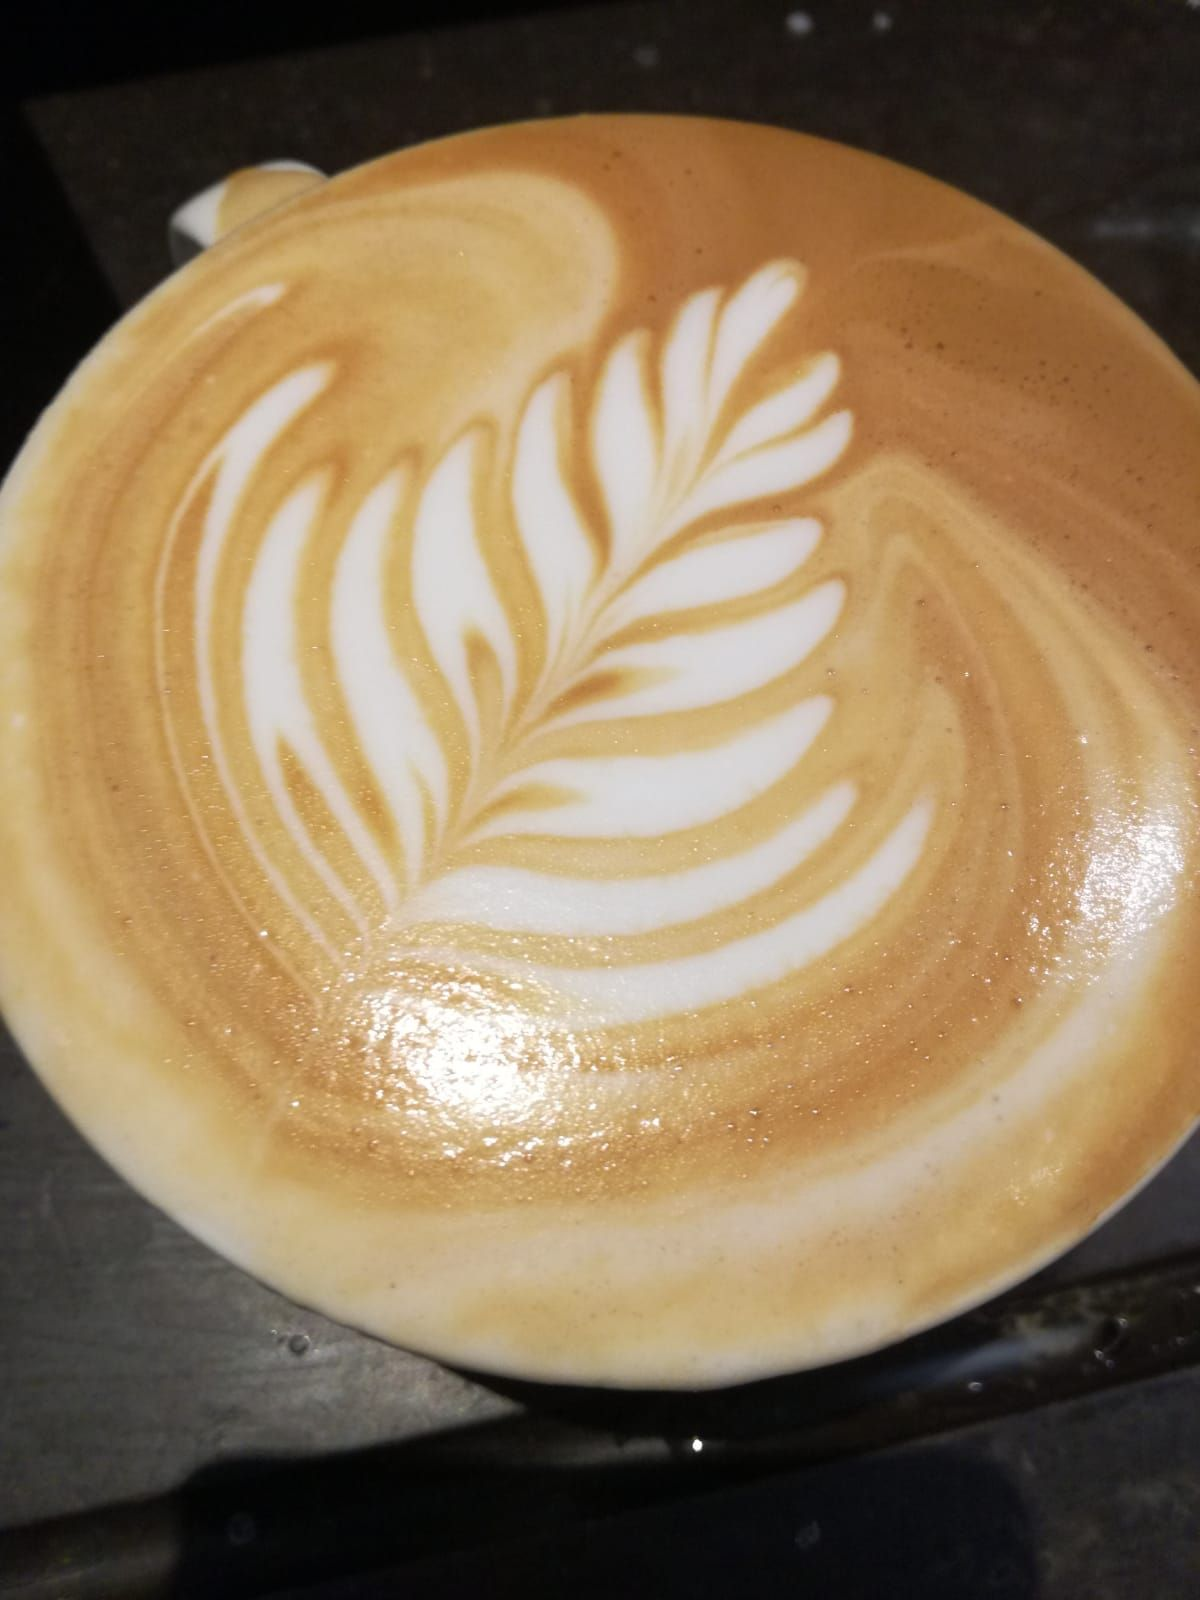 The Quest of Making a Perfect Coffee Coffee latte art